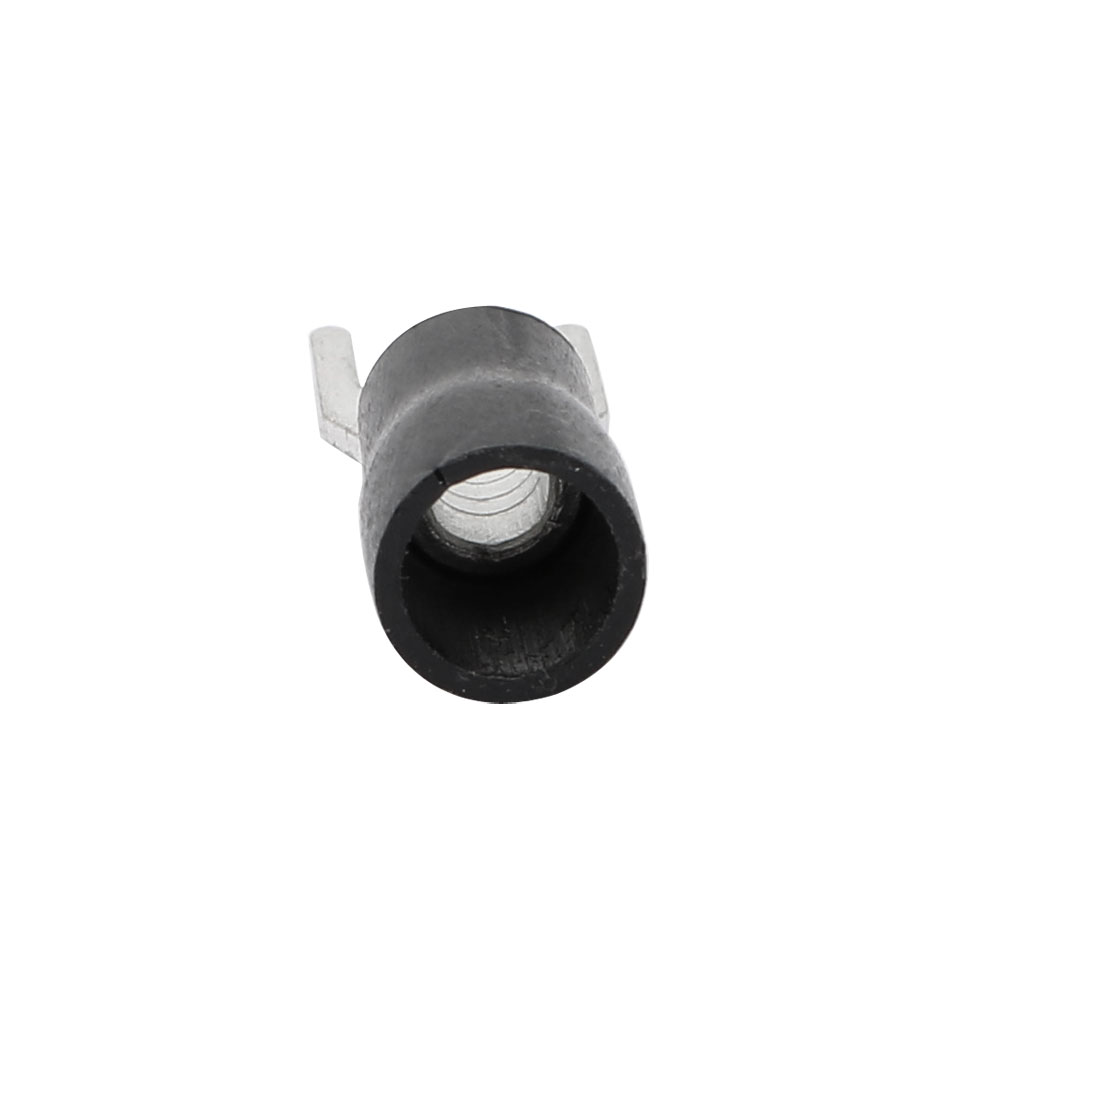 30Pcs AWG 12-10 U-Type Crimp Terminals Insulated Wire Connectors Black - image 1 of 2